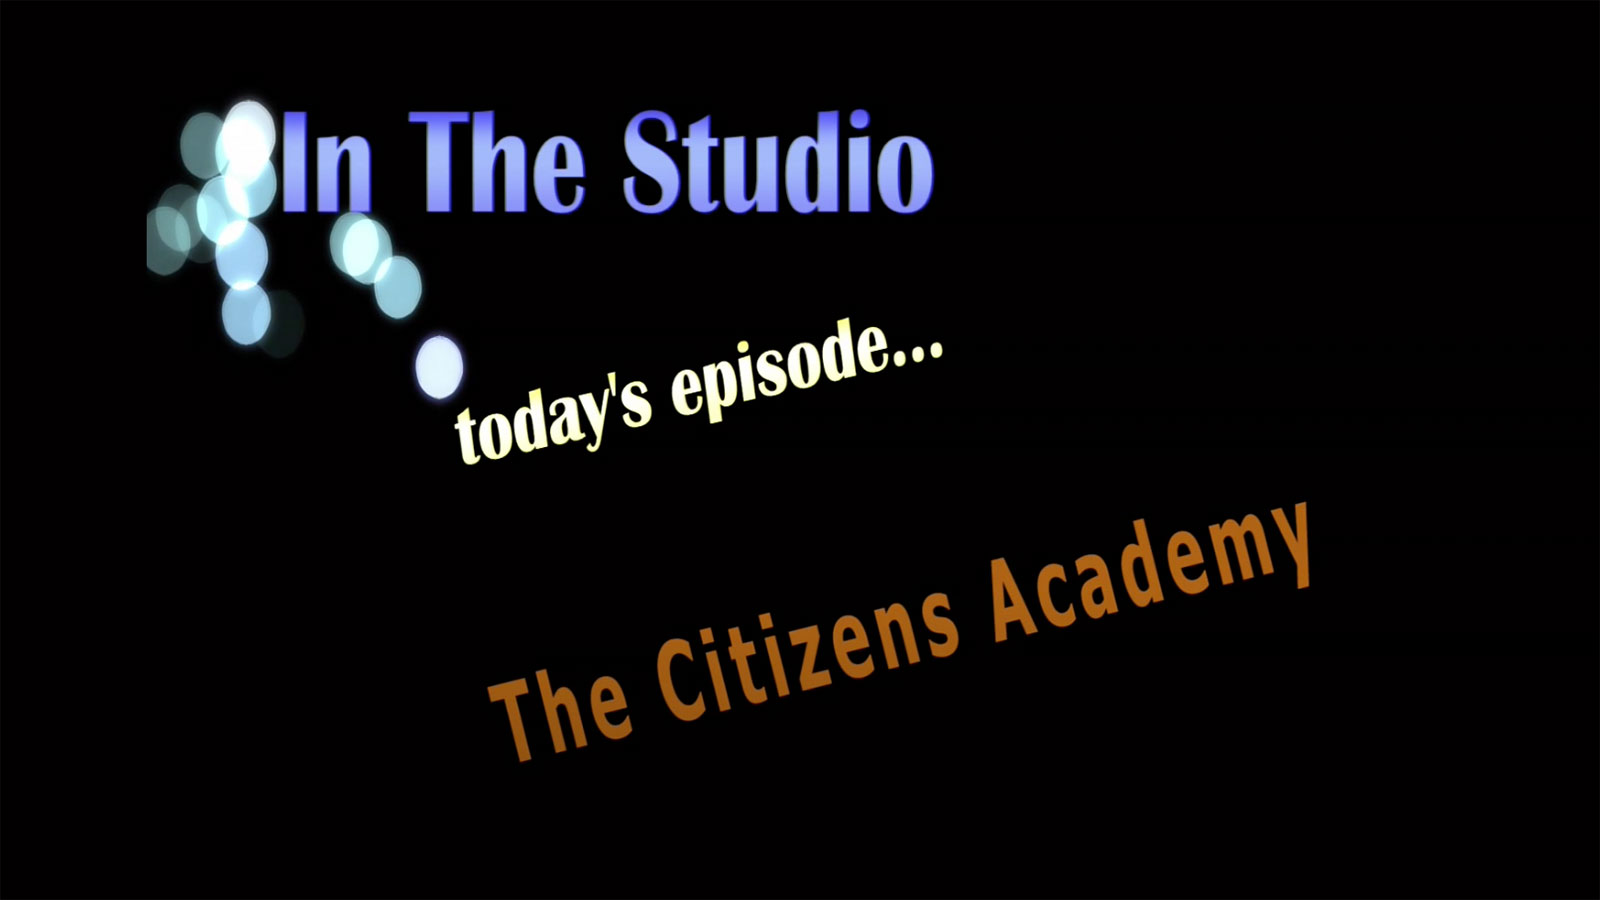 In the Studio: The Citizens Academy